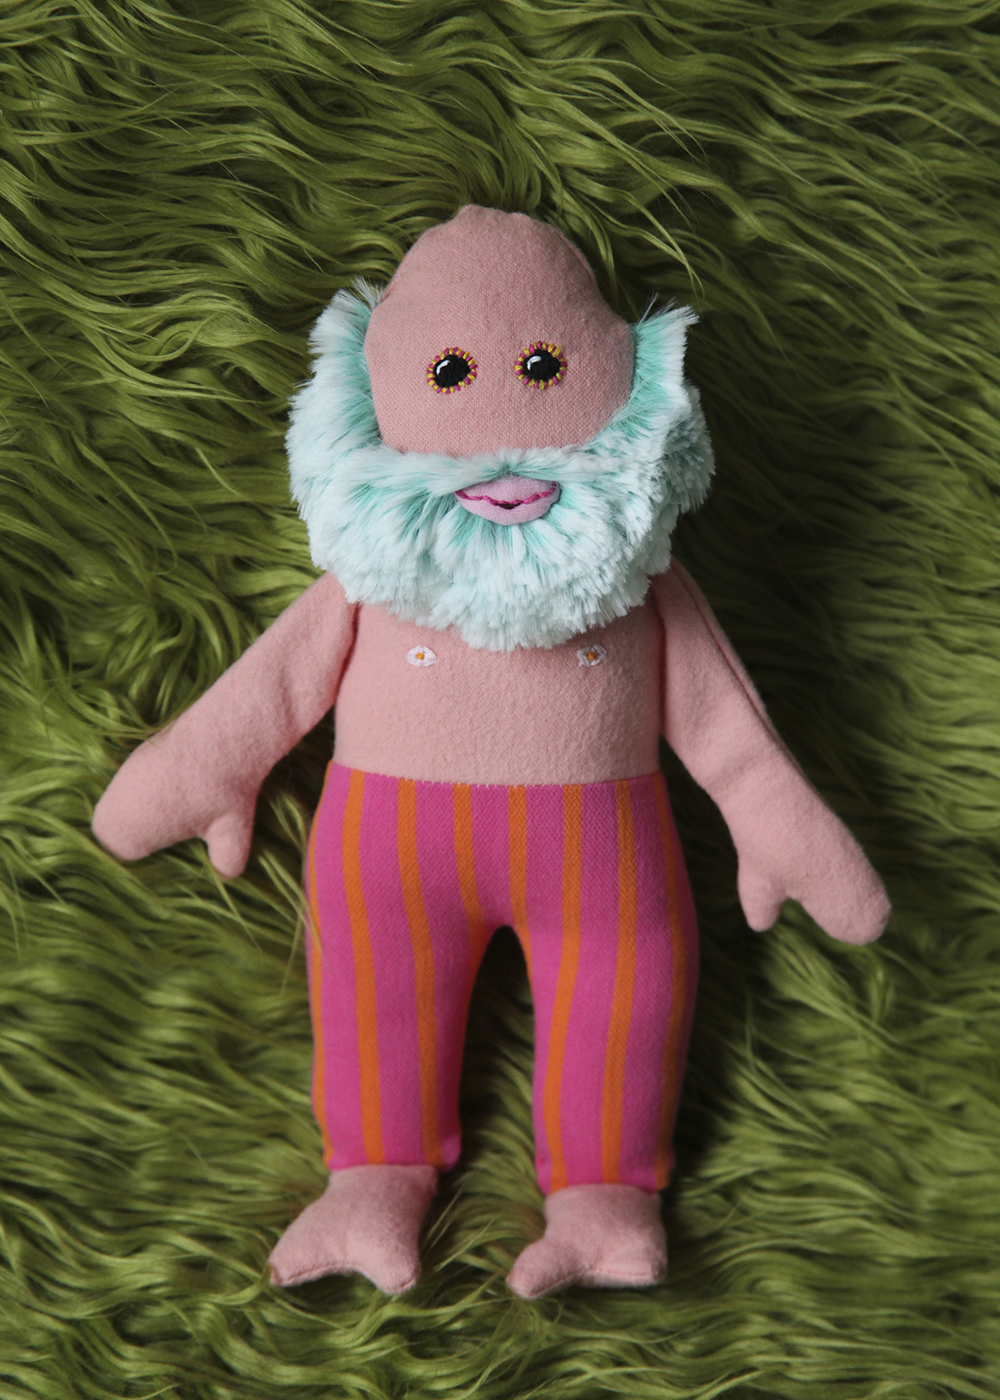 I DEFINITELY AM ATTRACTED TO THINGS THAT ARE BORDERLINE CUTE AND BORDERLINE CREEPY - Old Man Baby Doll. Mixed media, 2017.